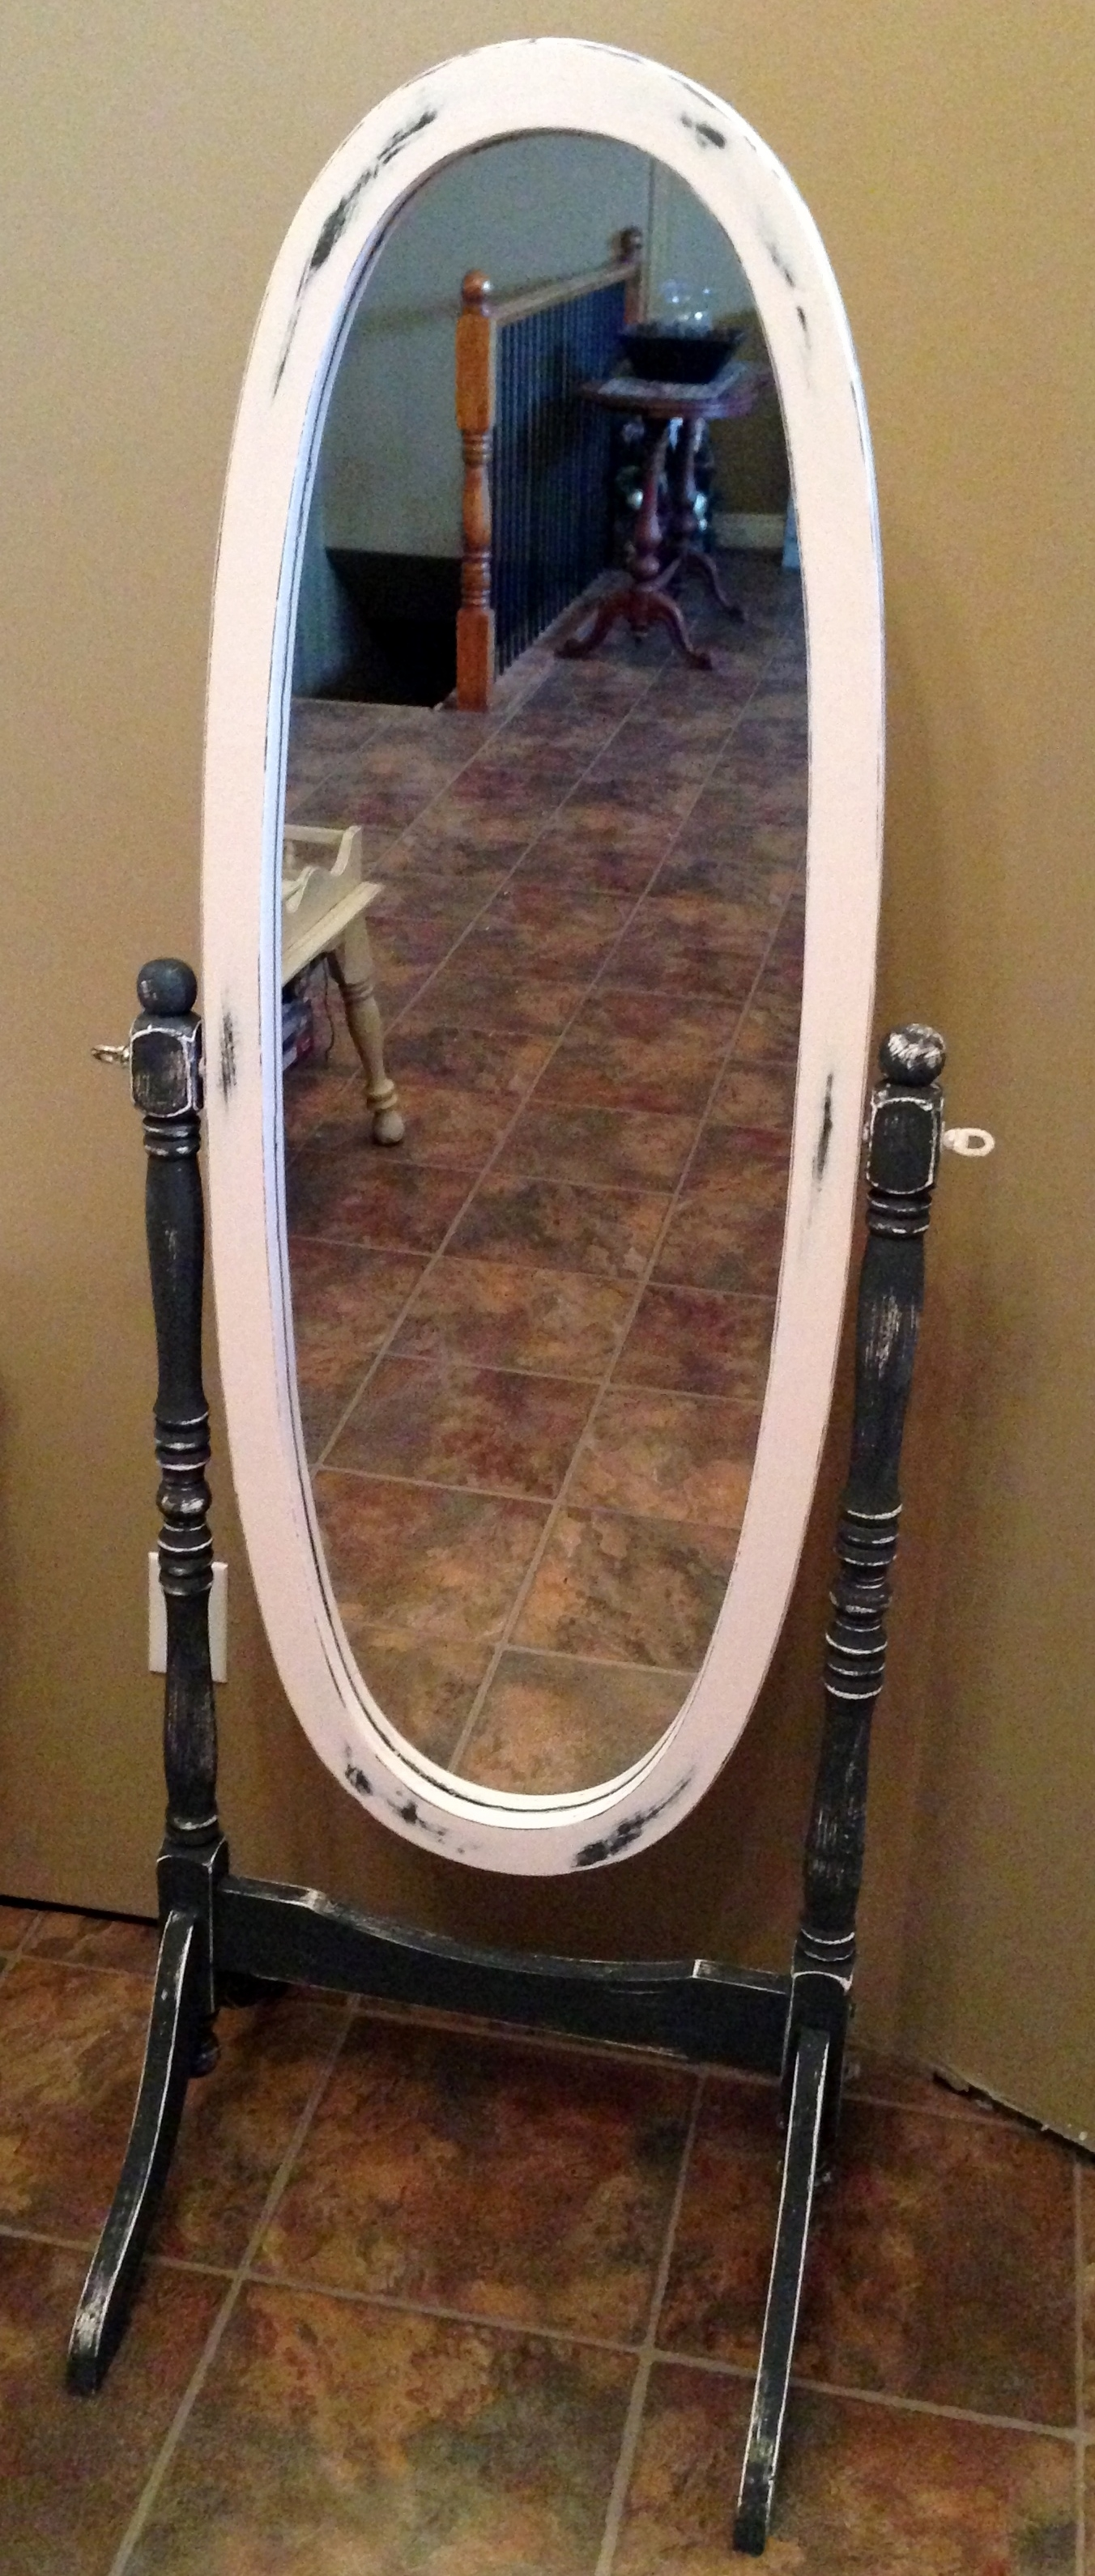 15 Inspirations Oval Freestanding Mirror Mirror Ideas